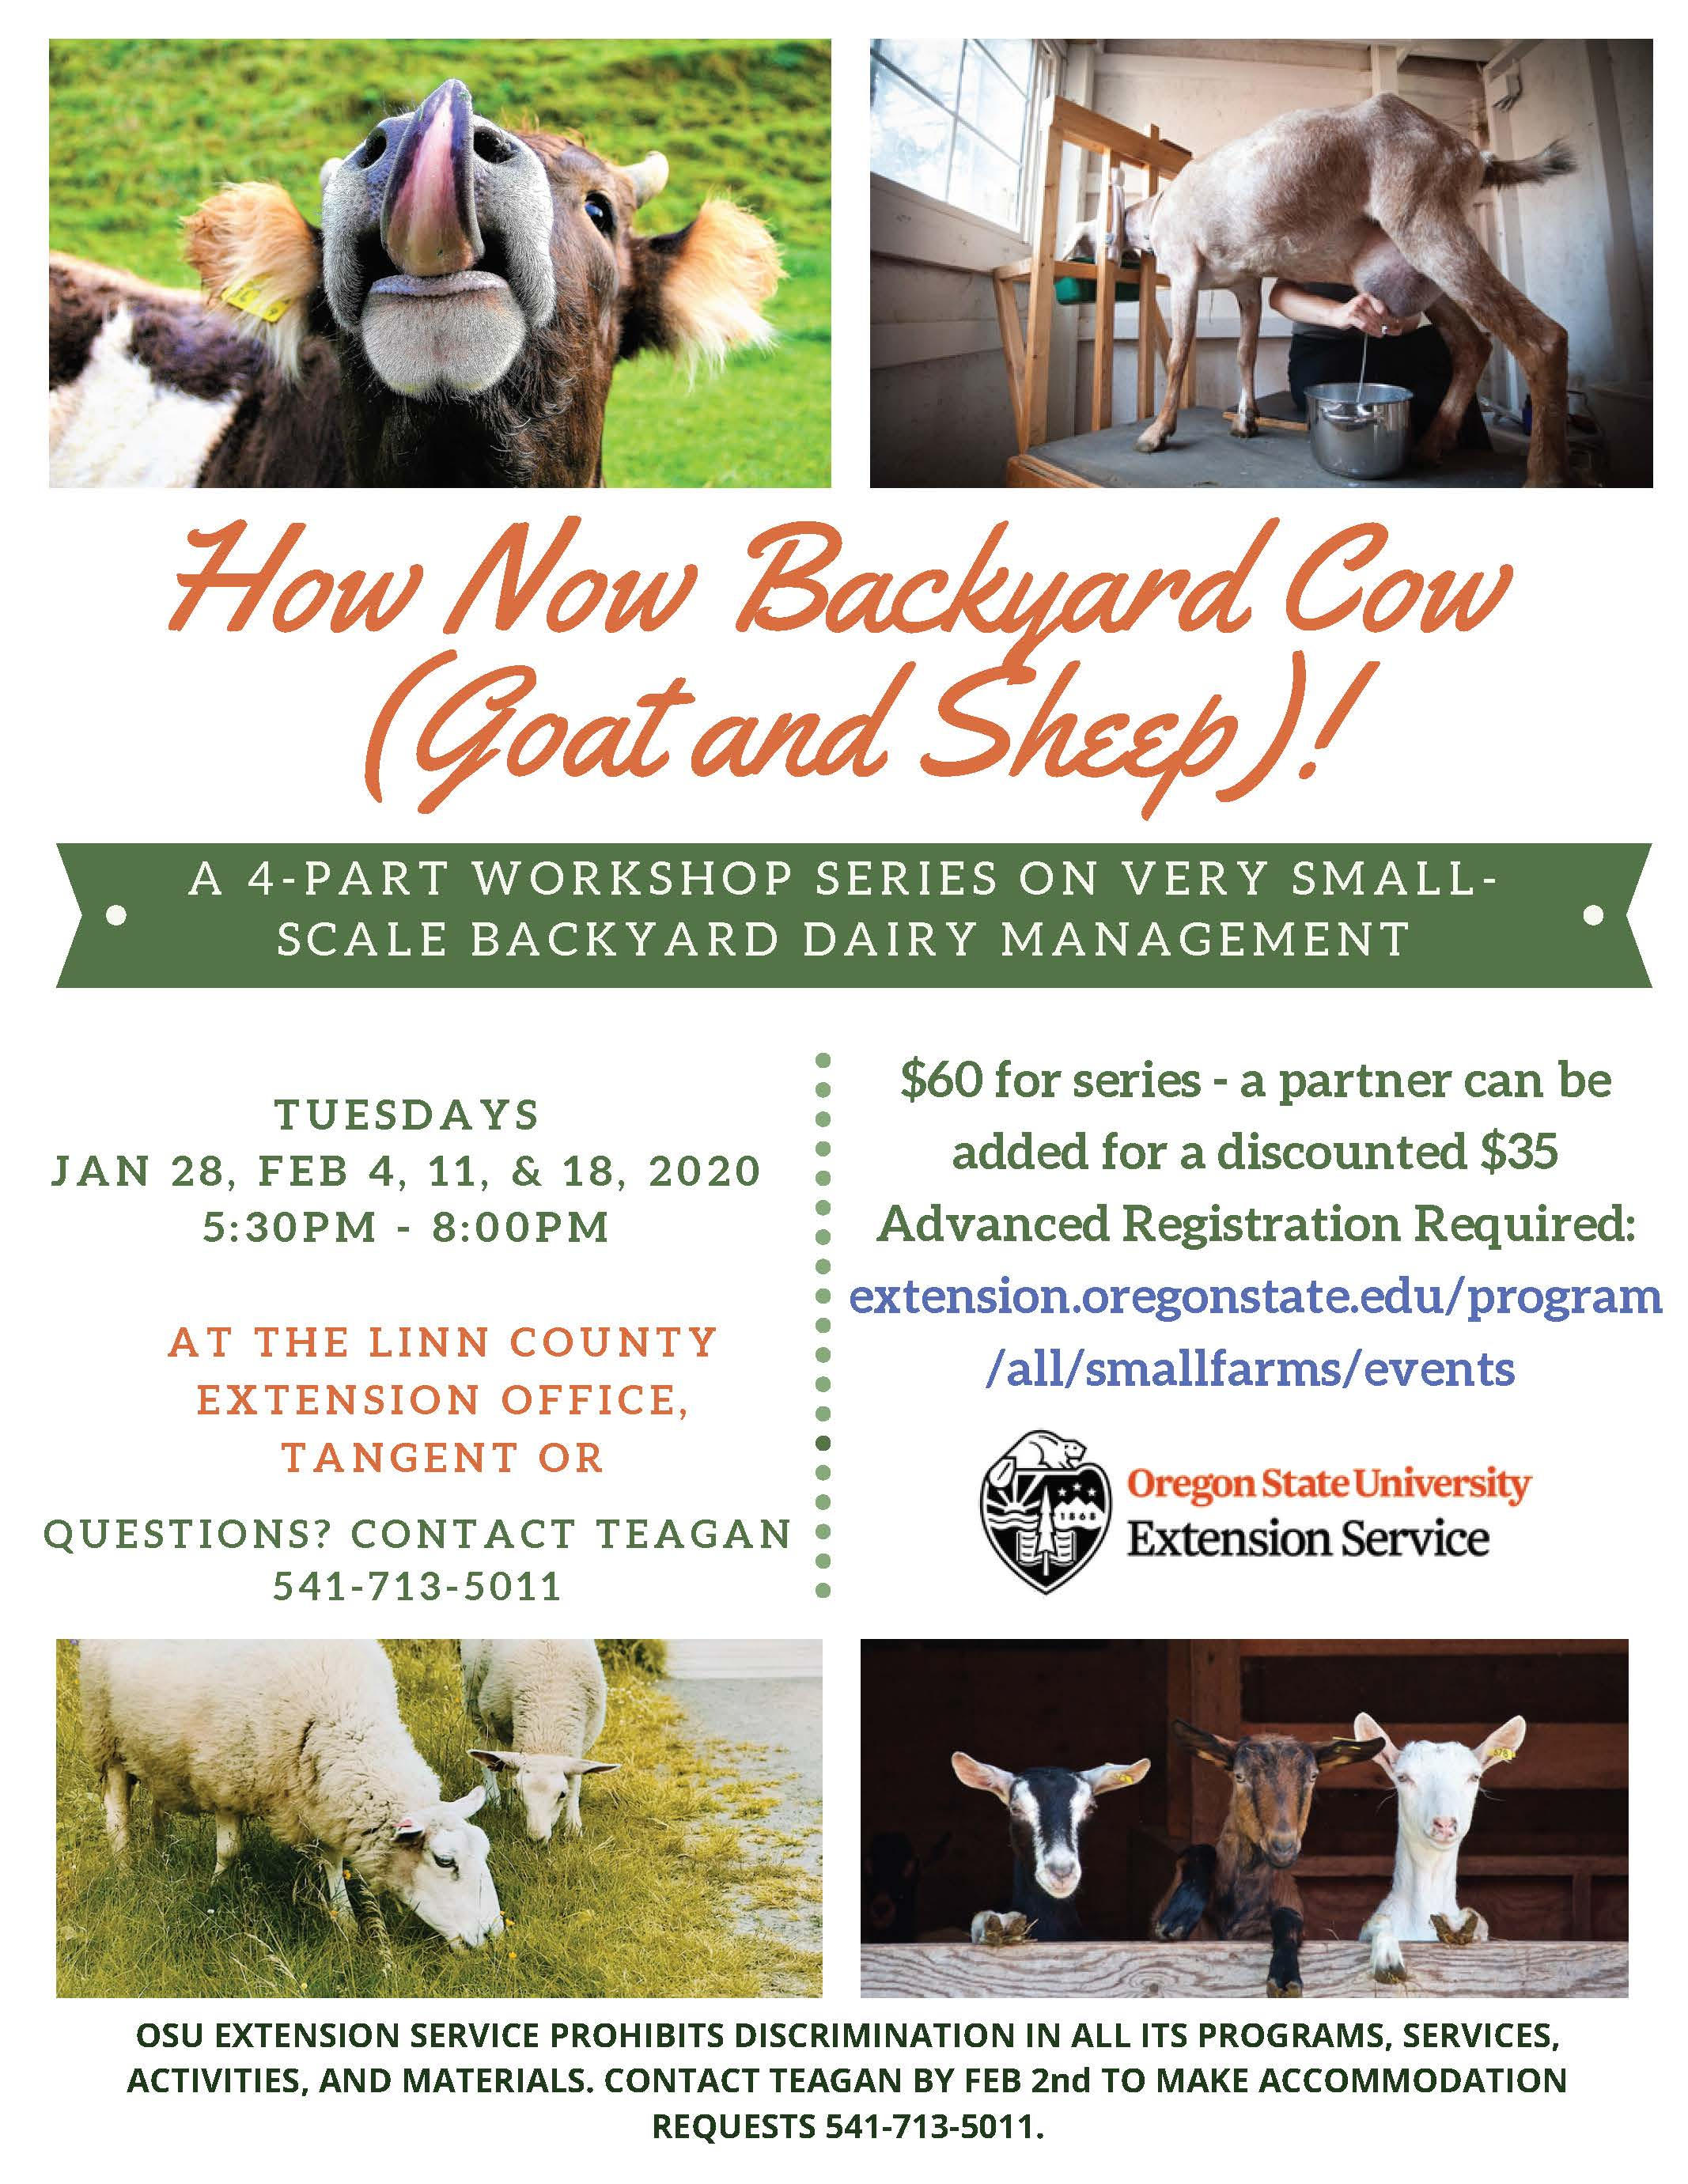 How Now Backyard Cow (Goat and Sheep)! A 4-part workshop series on very small-scale backyard dairy management